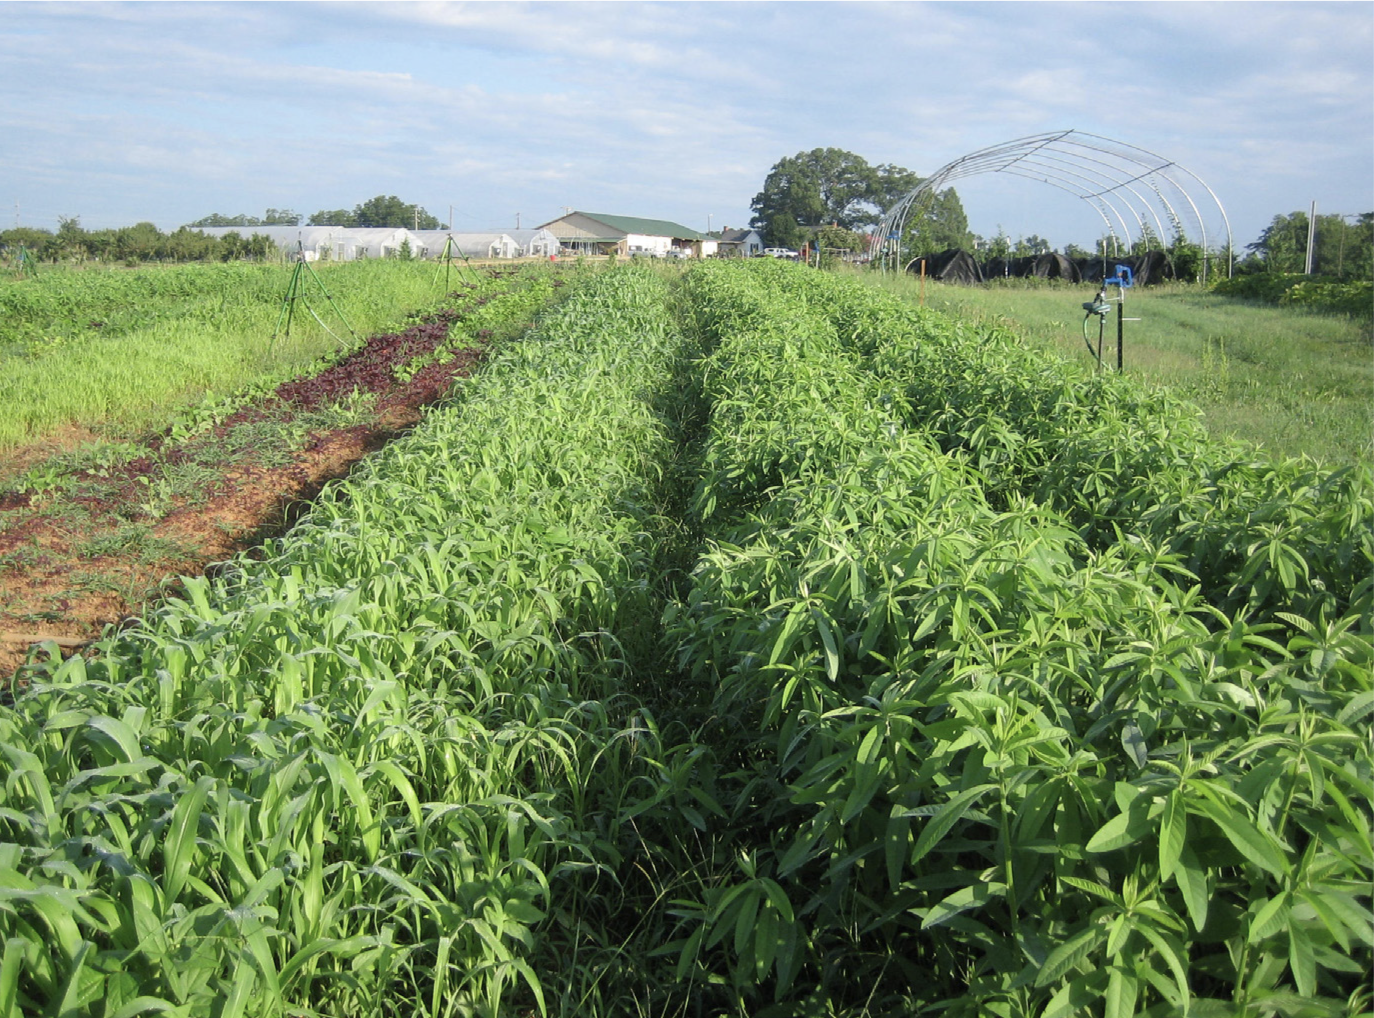 Field of sudangrass-sorghum and cowpeas